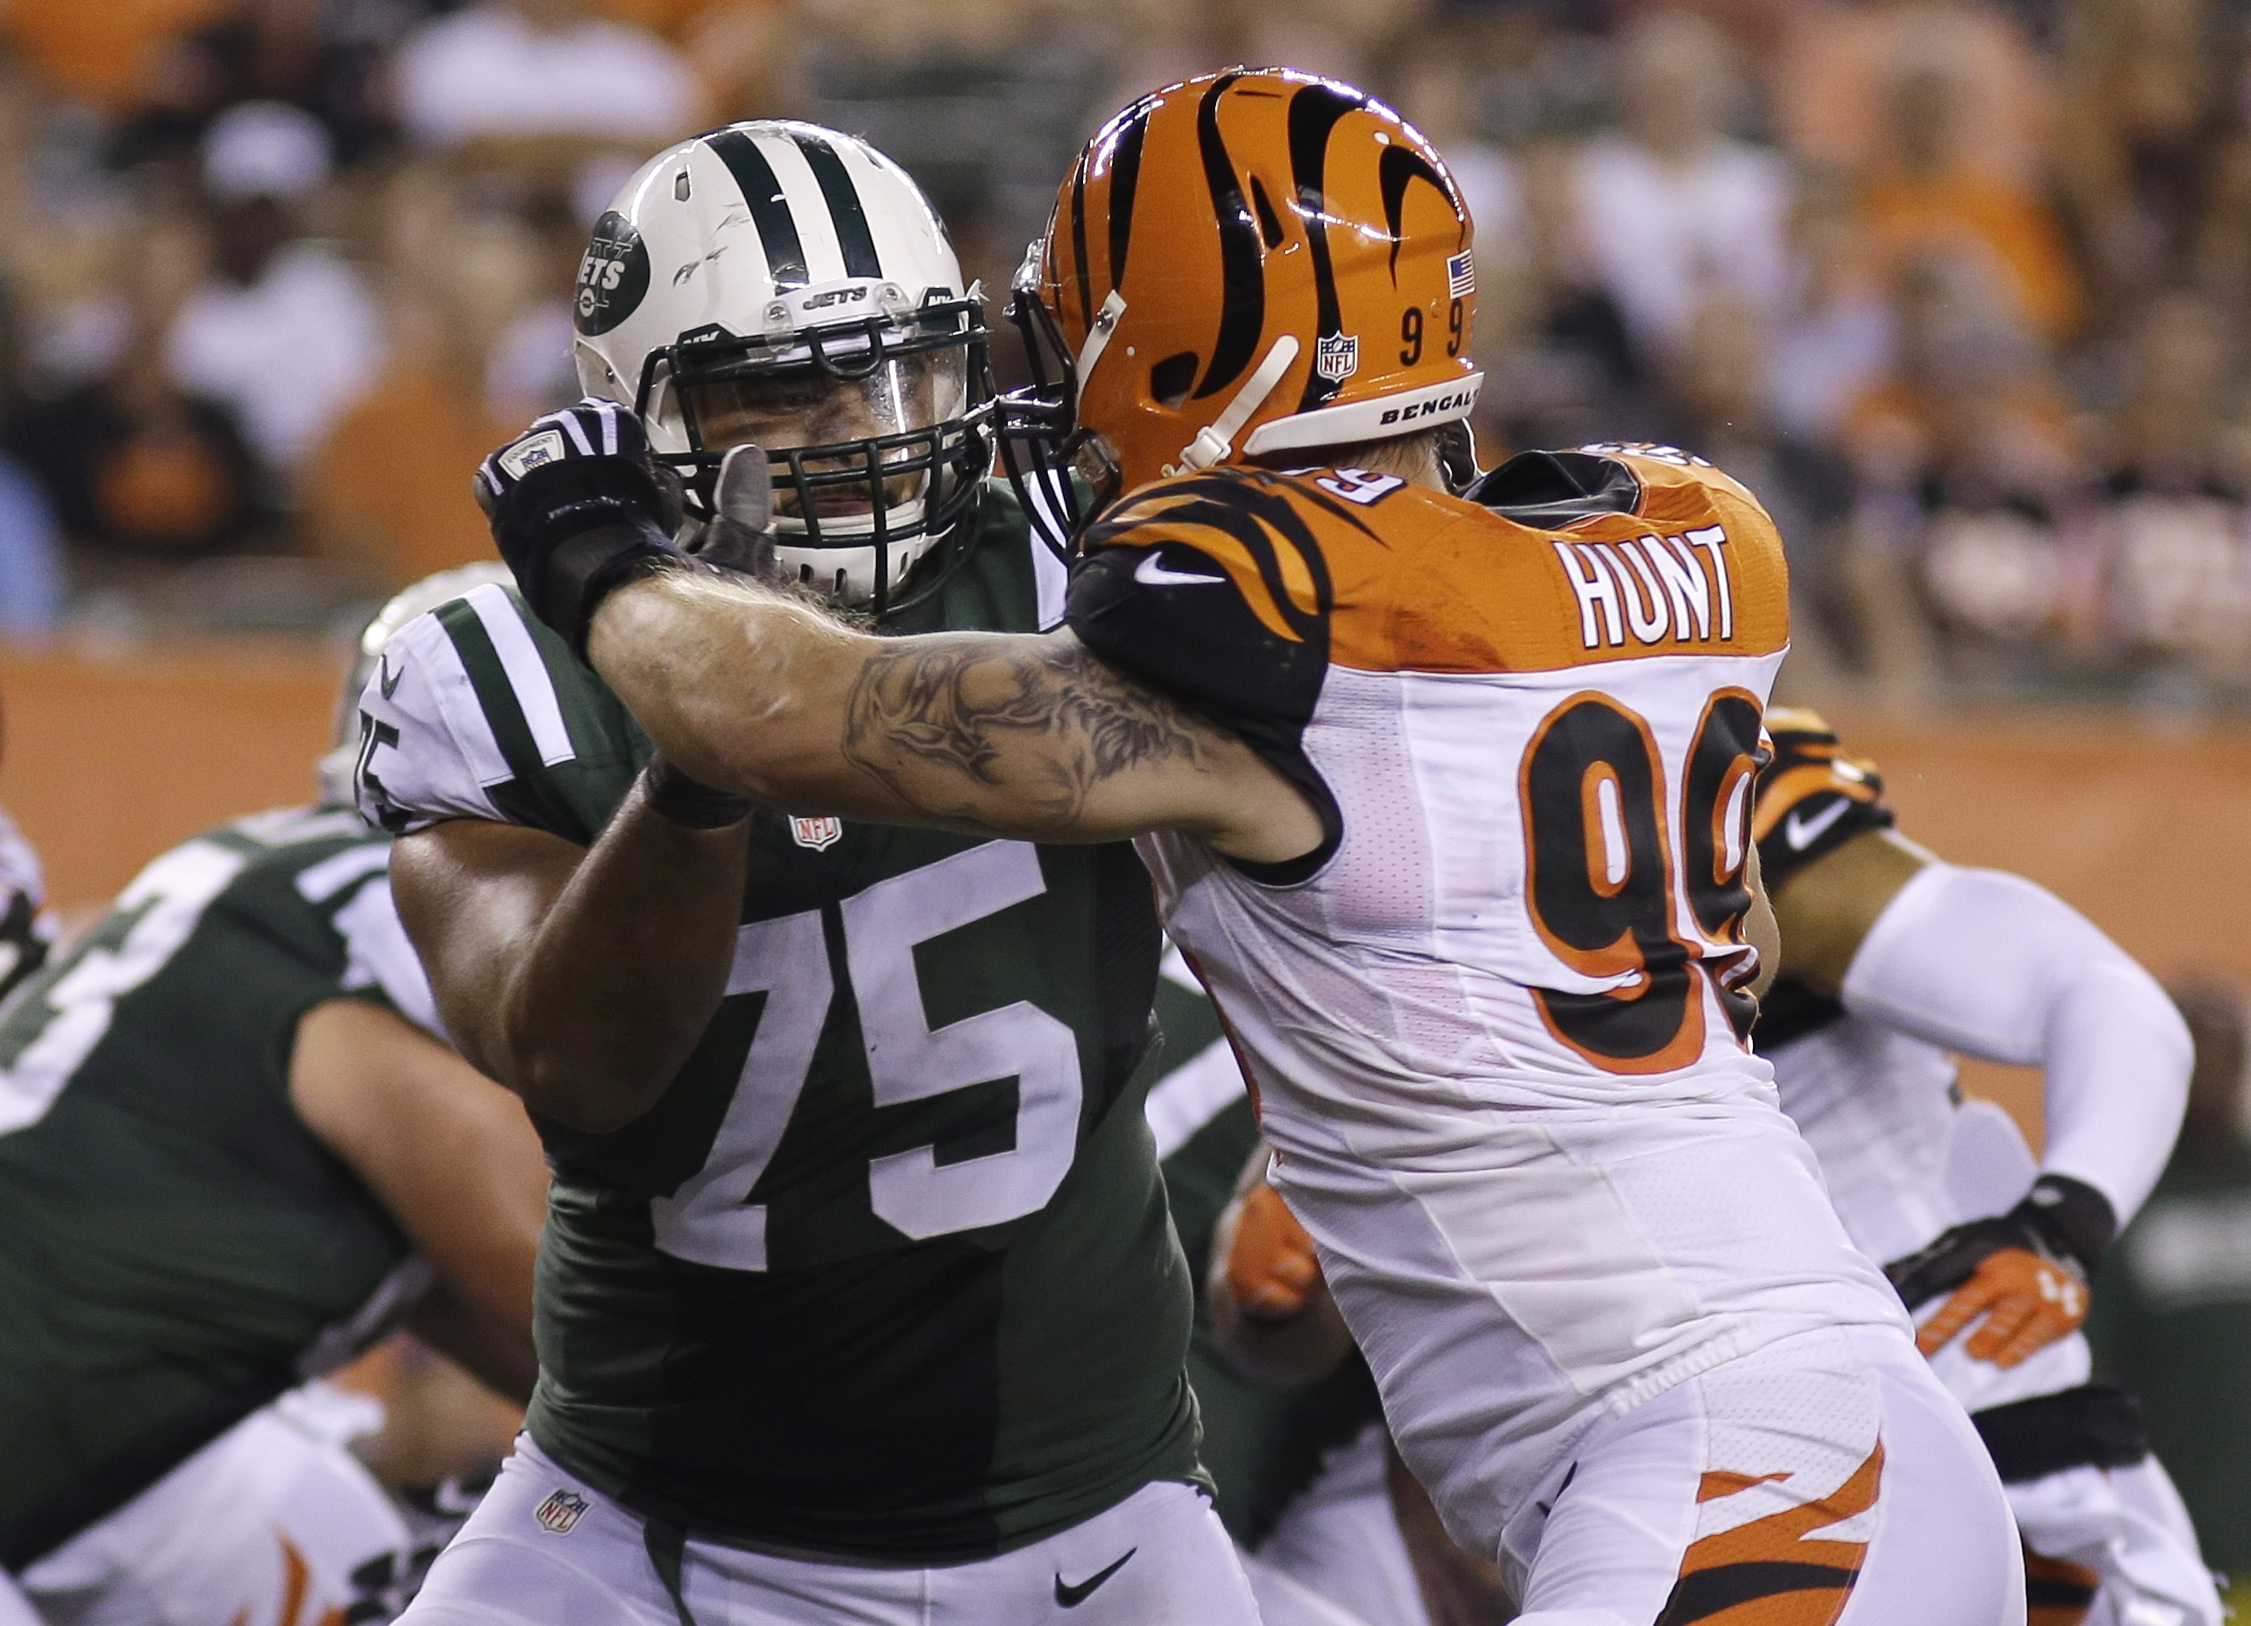 FILE - In this Aug. 16, 2014, file photo, New York Jets offensive tackle Oday Aboushi (75) works against Cincinnati Bengals defensive end Margus Hunt (99)  during an NFL preseason football game in Cincinnati. Aboushi is facing the possibility of going fro